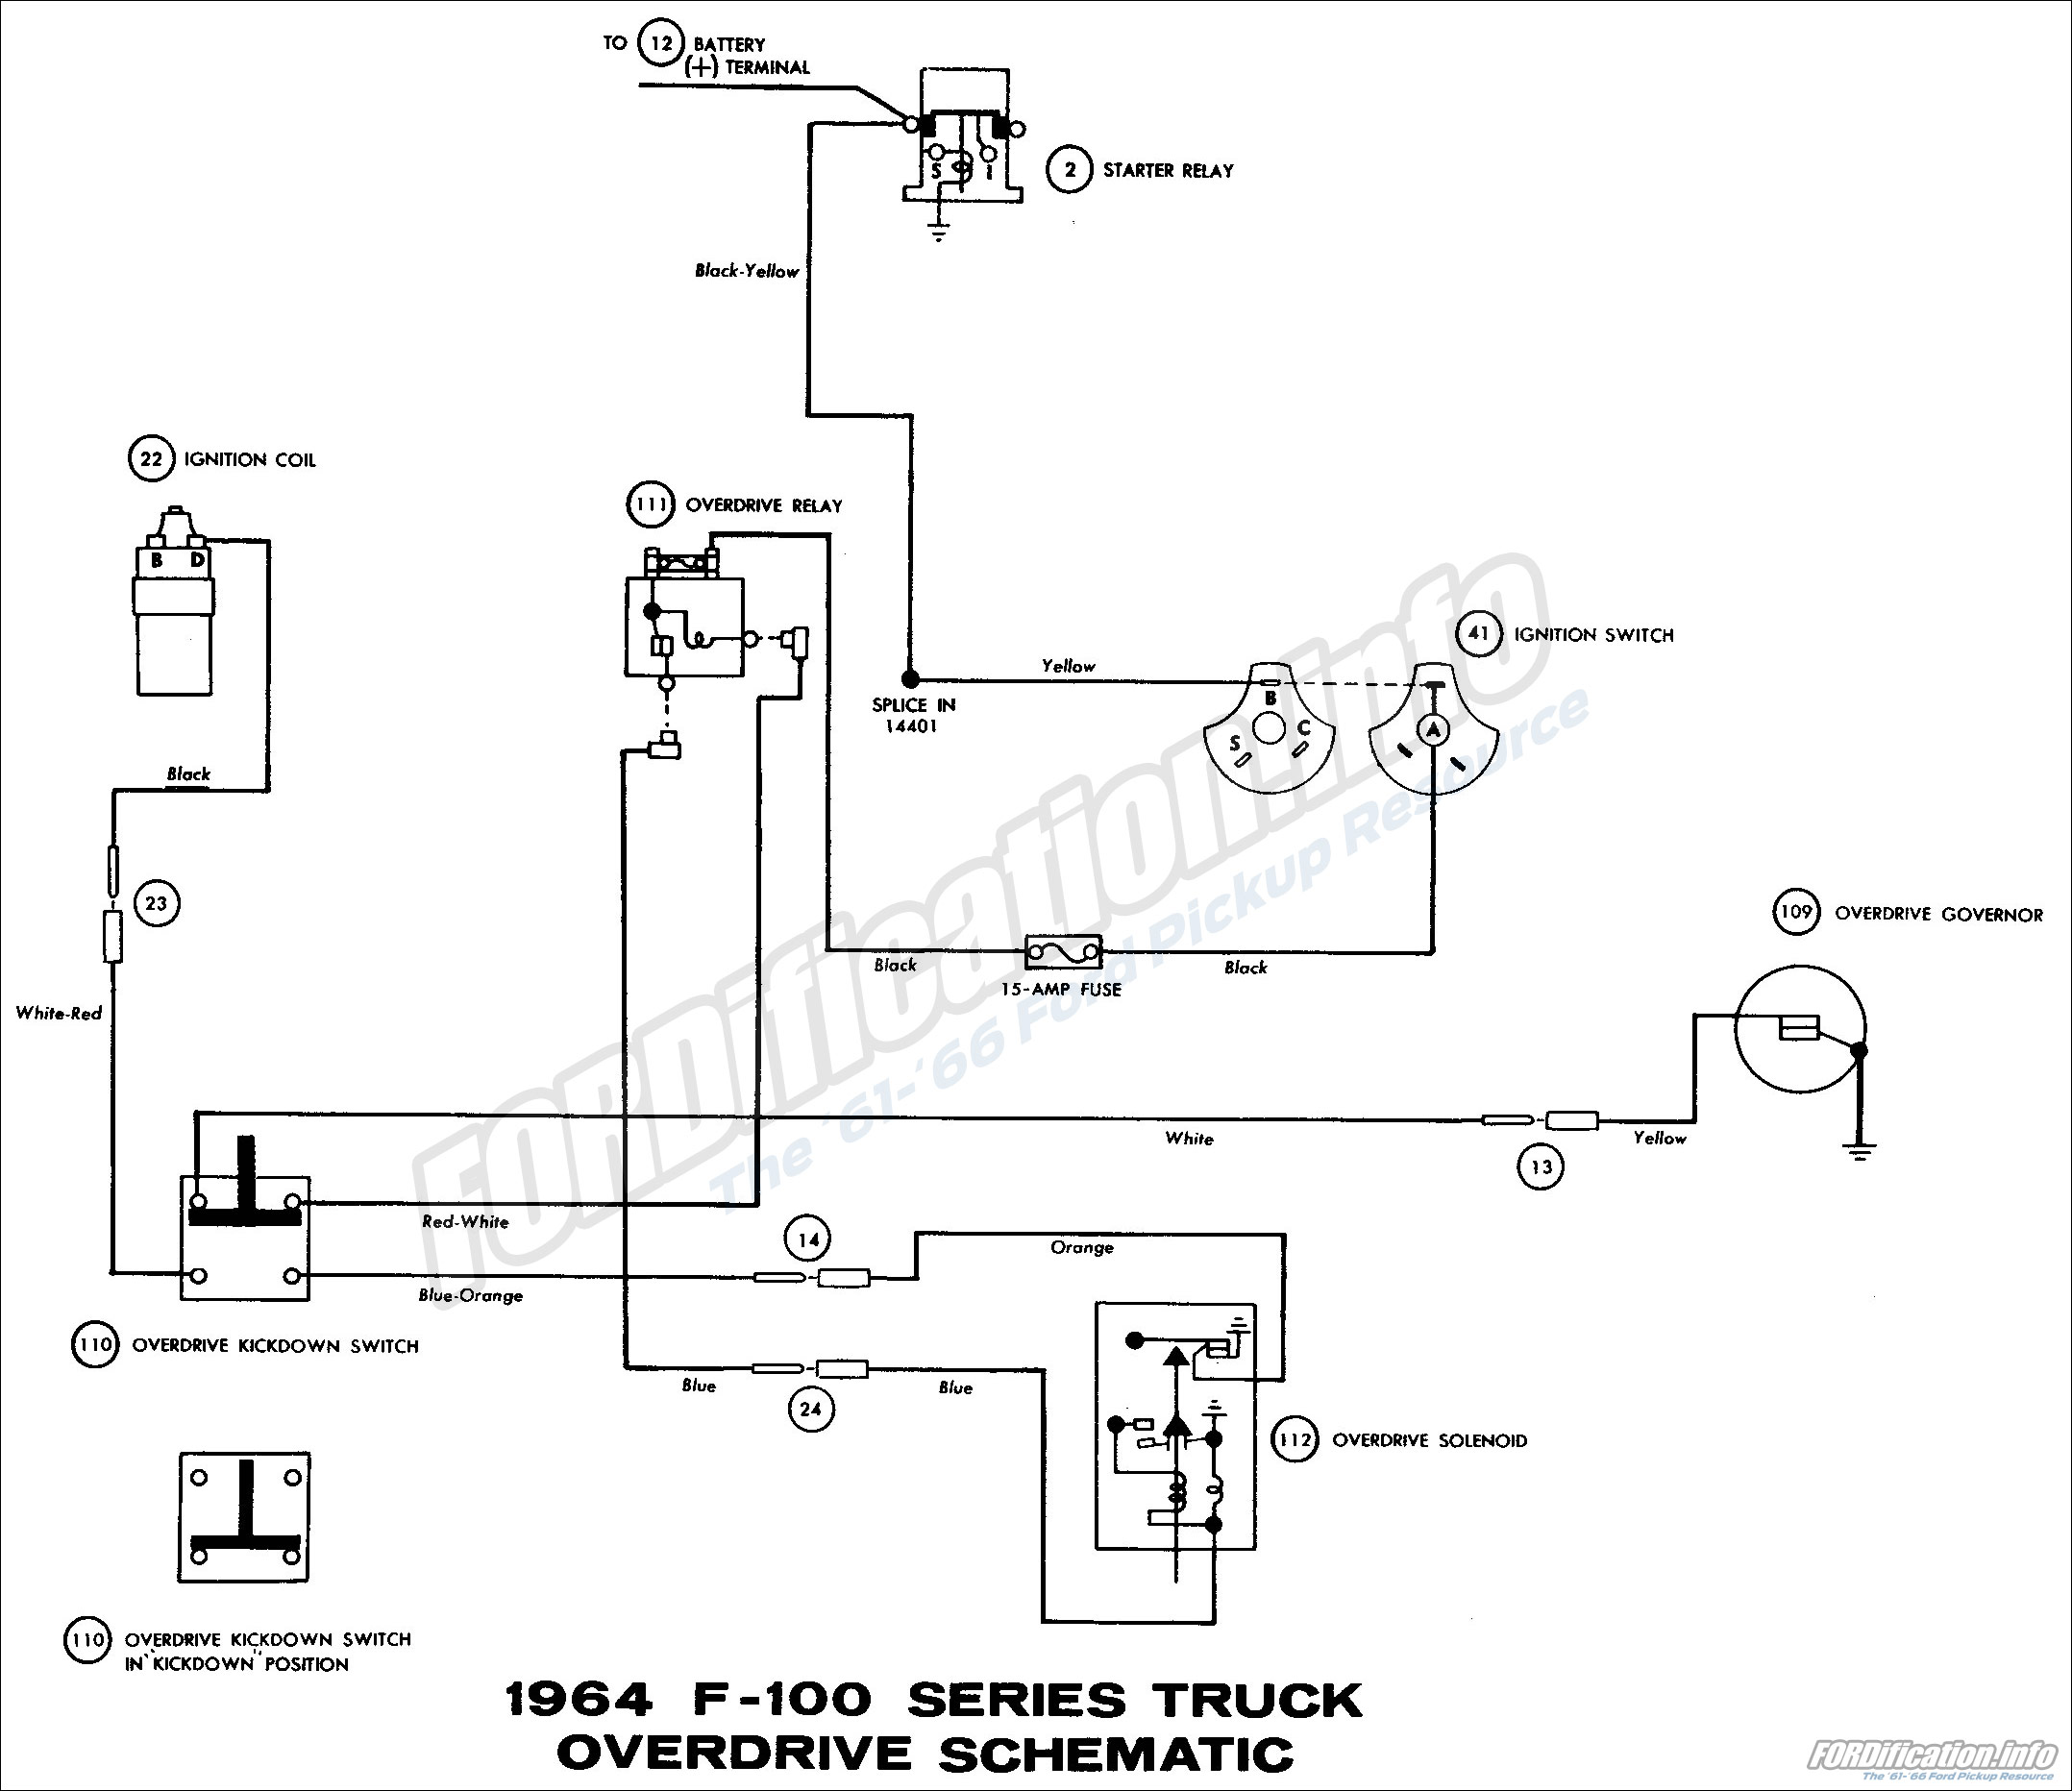 Accessories Schematic, 1964 F-100 Series Truck